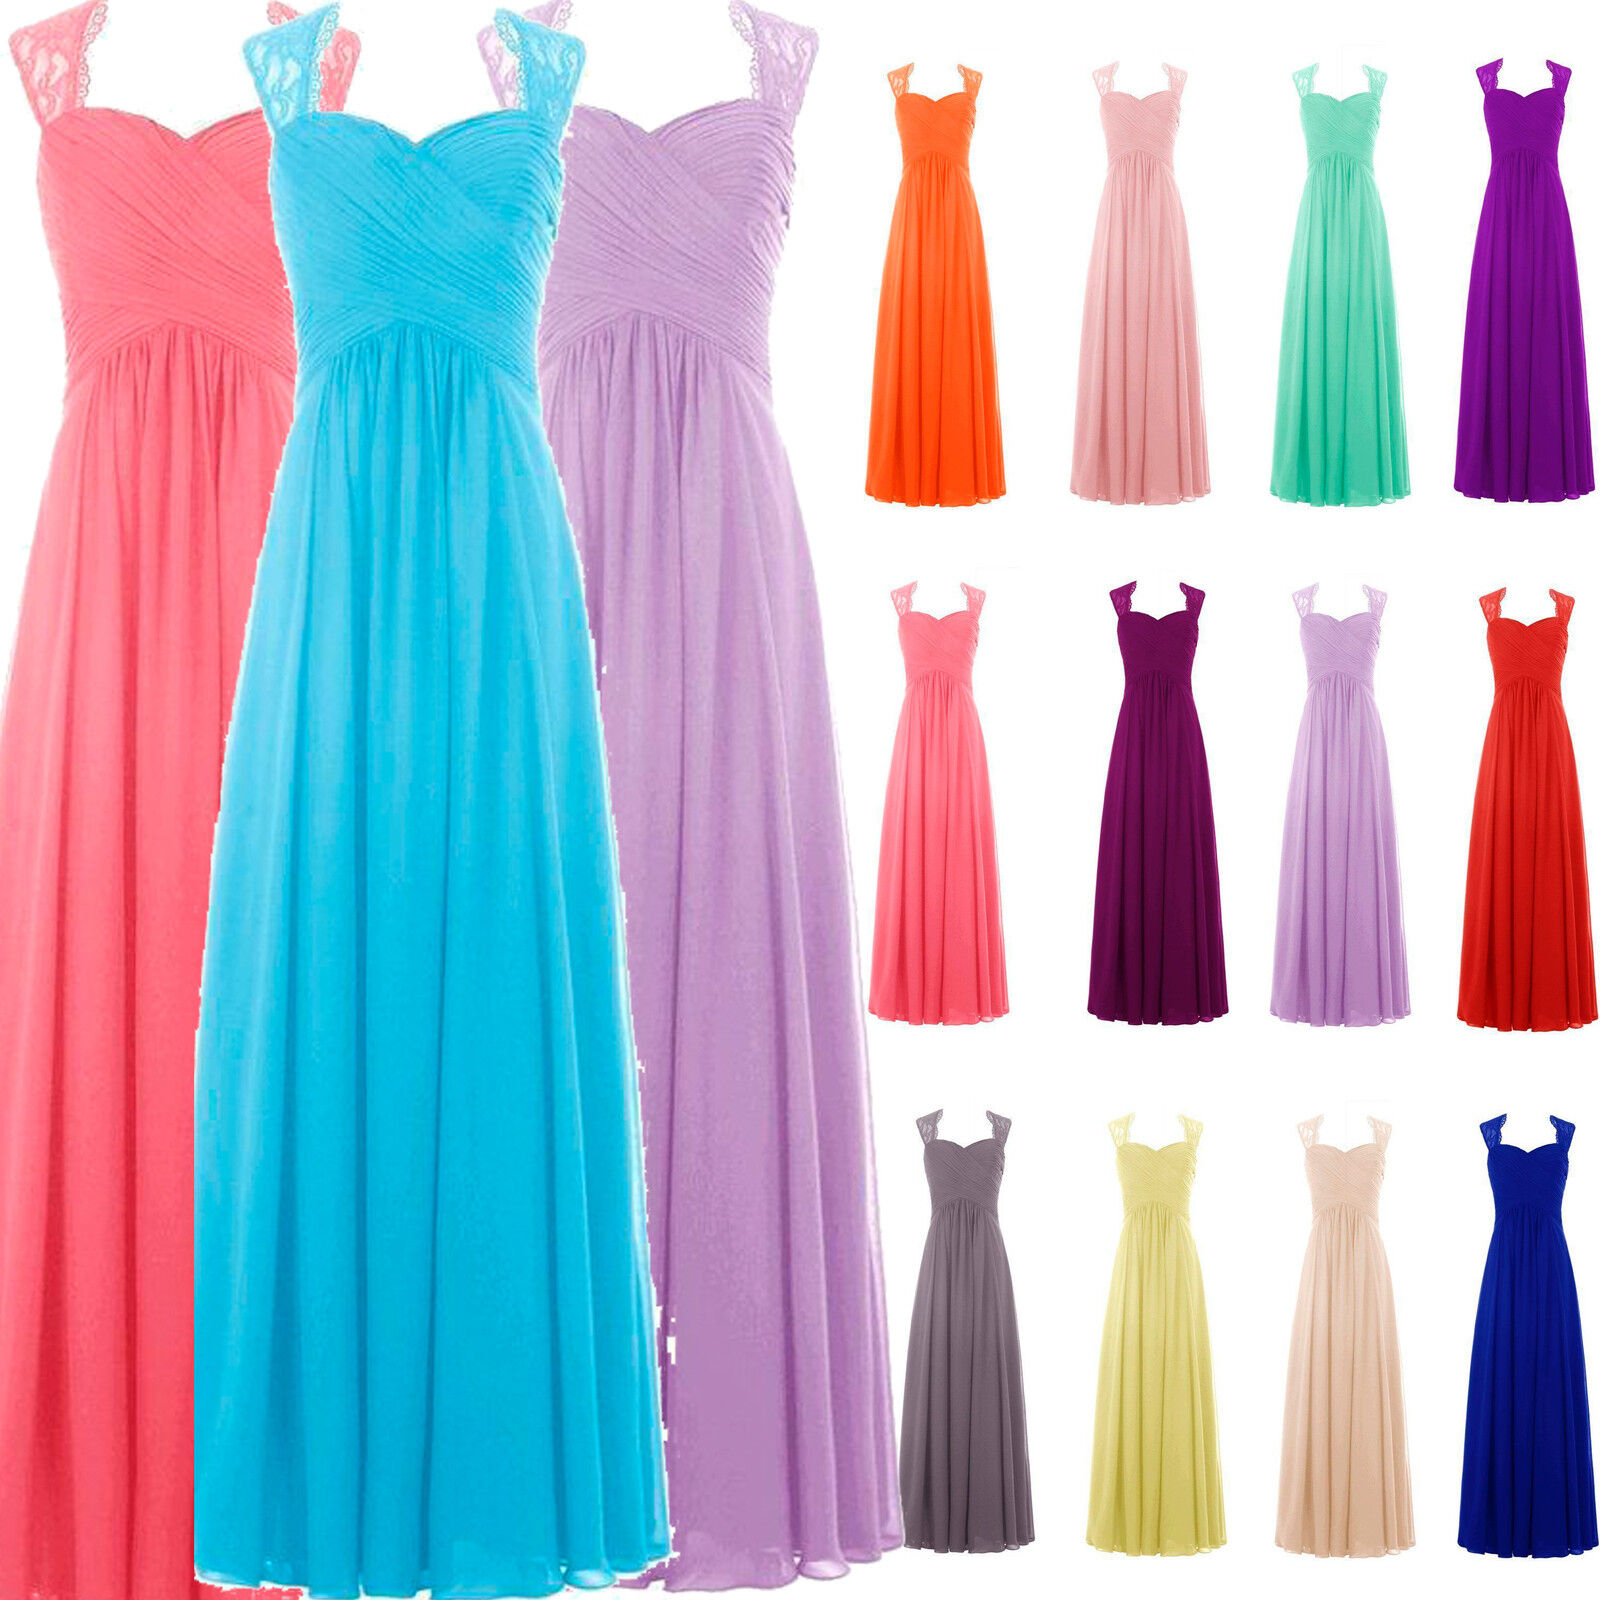 Size UK6-32 Bridesmaid Dresses Long Formal Evening Party Pageant Ball Prom Gowns